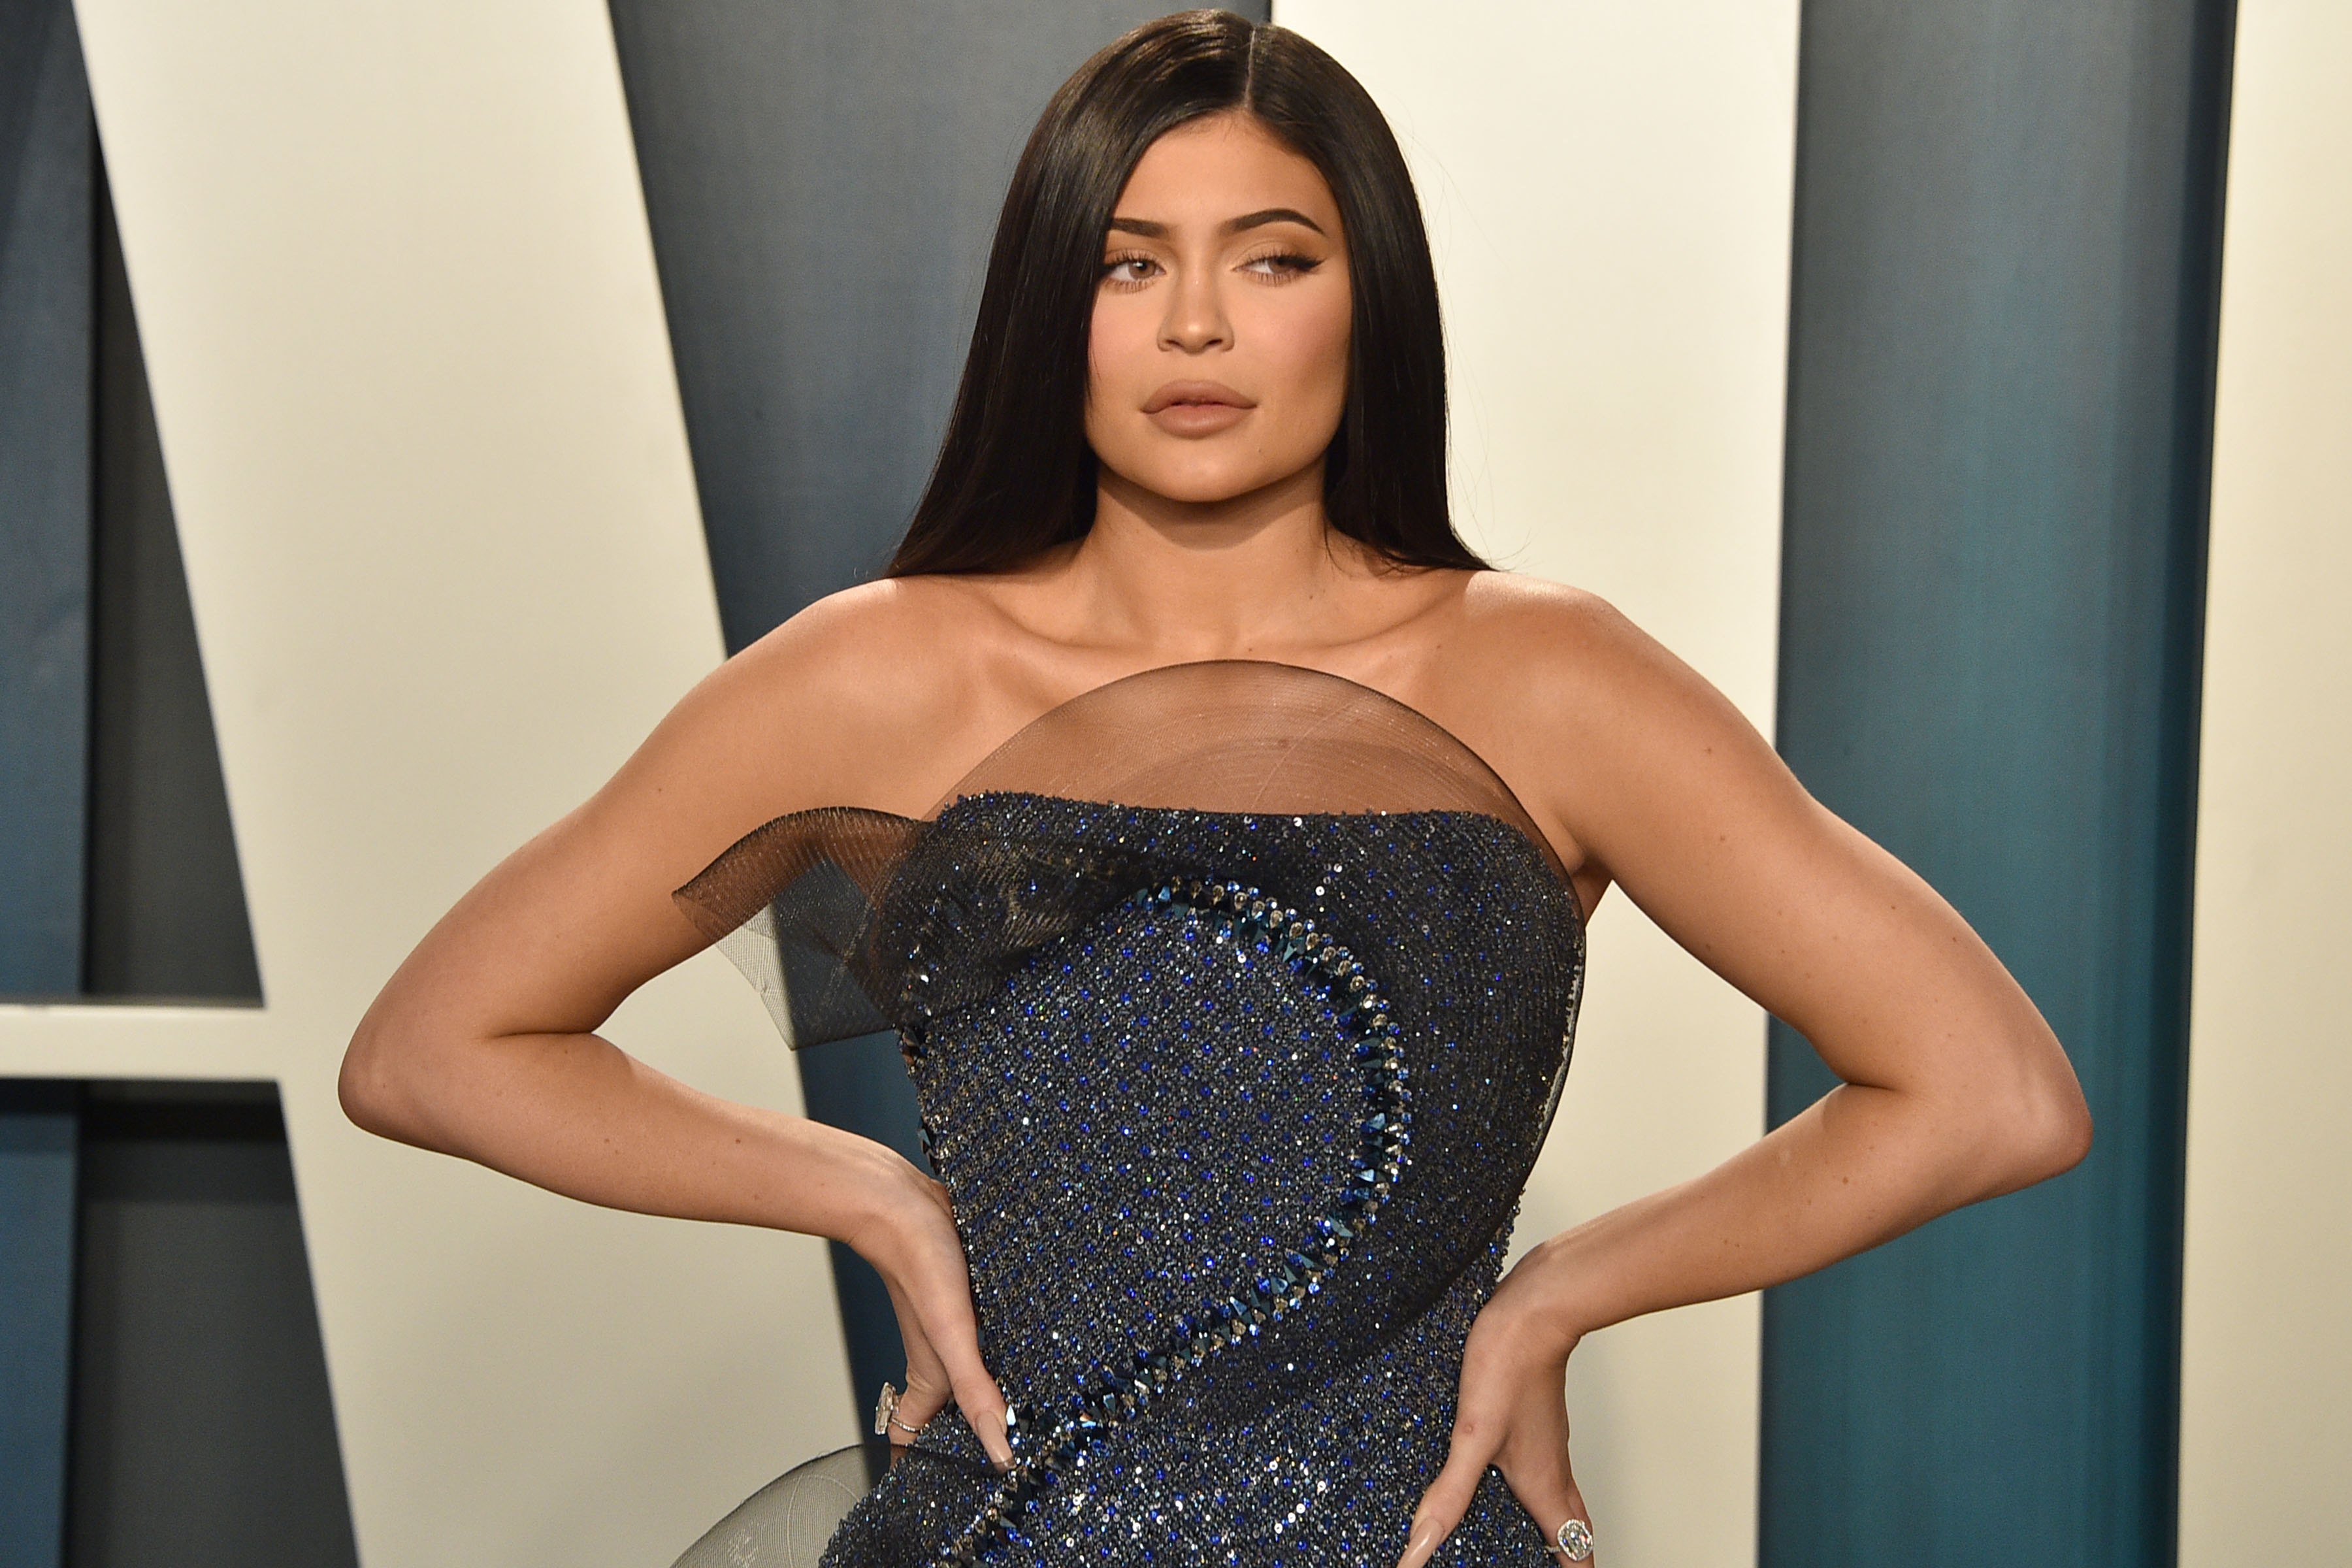 Kylie Jenner's Calabasas Starter Home Is Listed for $3.6 Million